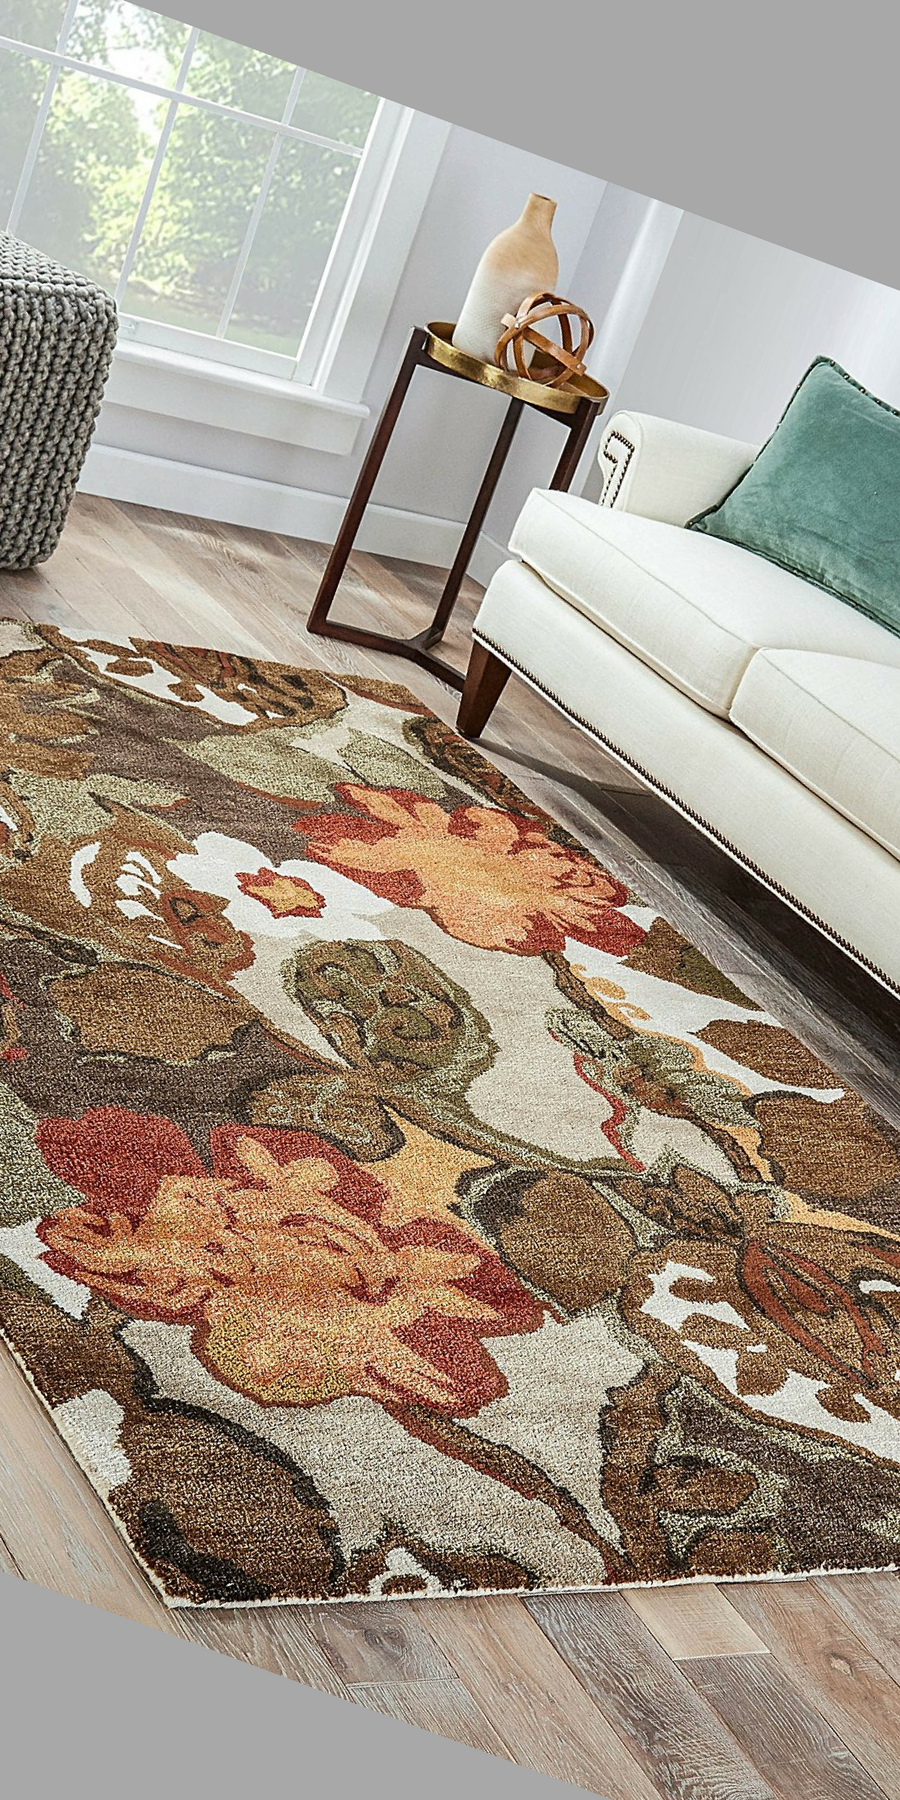 A Collection Of Area Rugs In All Kind Of Styles Shapes Colors And Best Prices From Amazon Living Room Area Rugs Eclectic Area Rug Boho Style Rugs